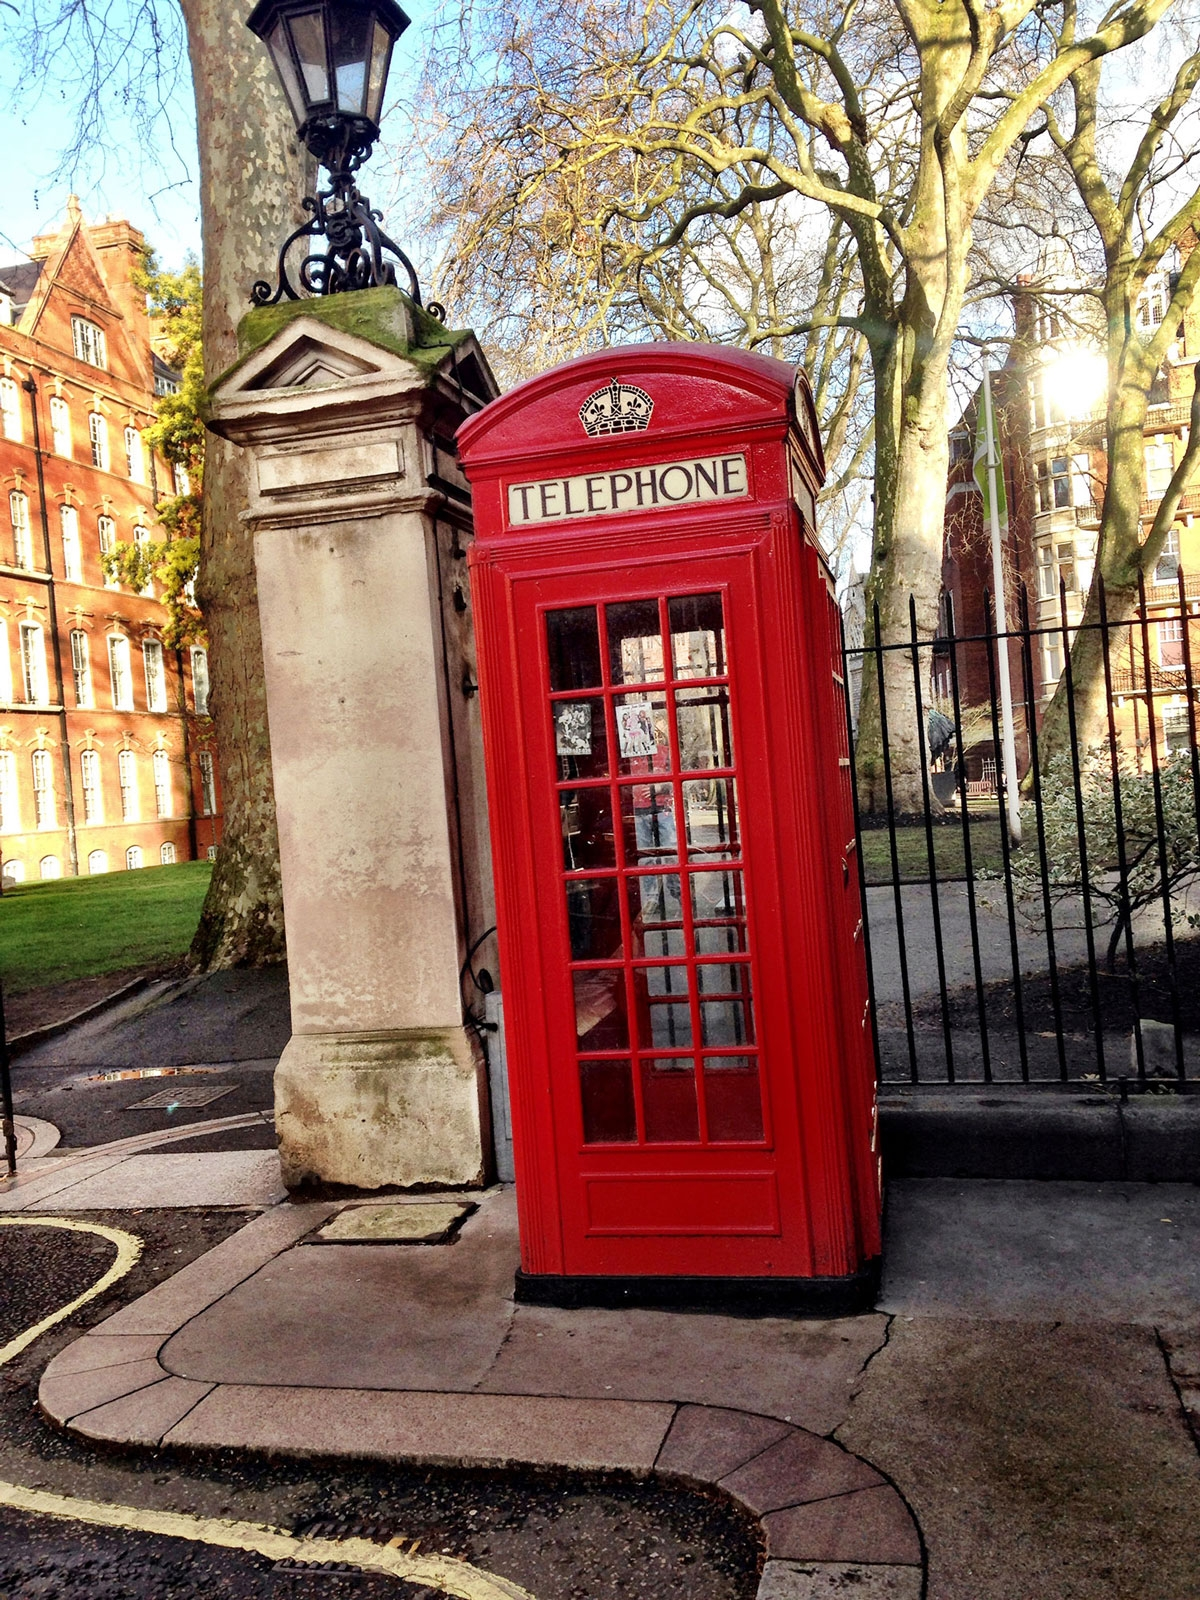 A red telephone booth. March 2016